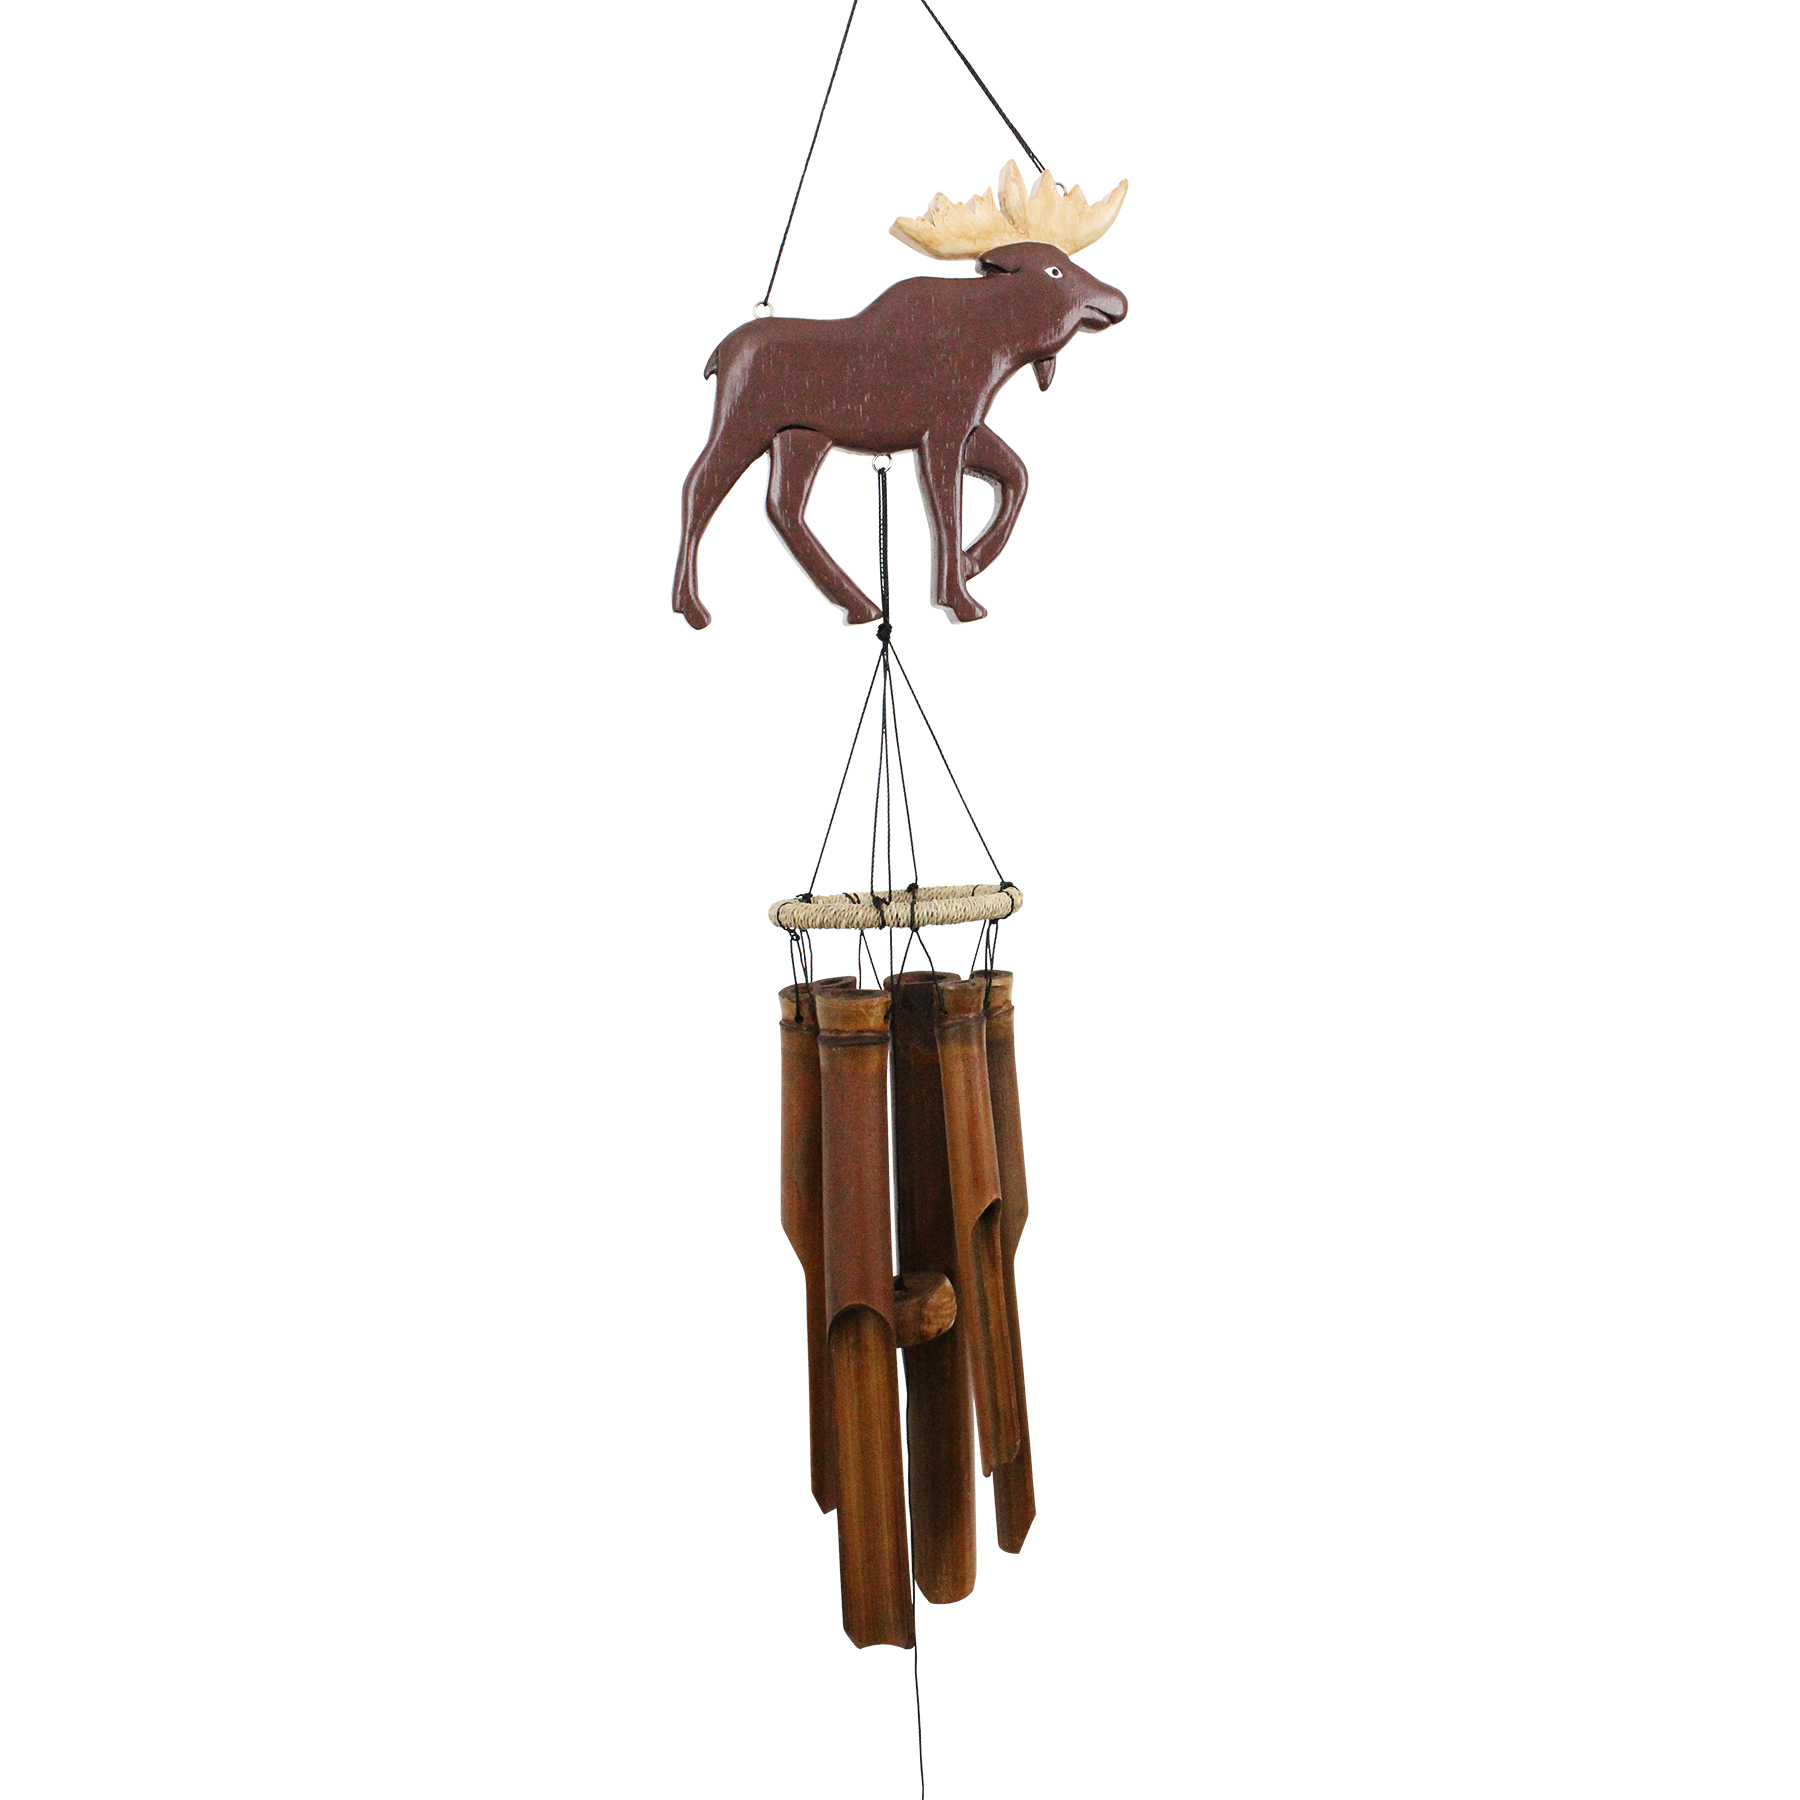 181MS - Moose Silhouette Bamboo Wind Chime